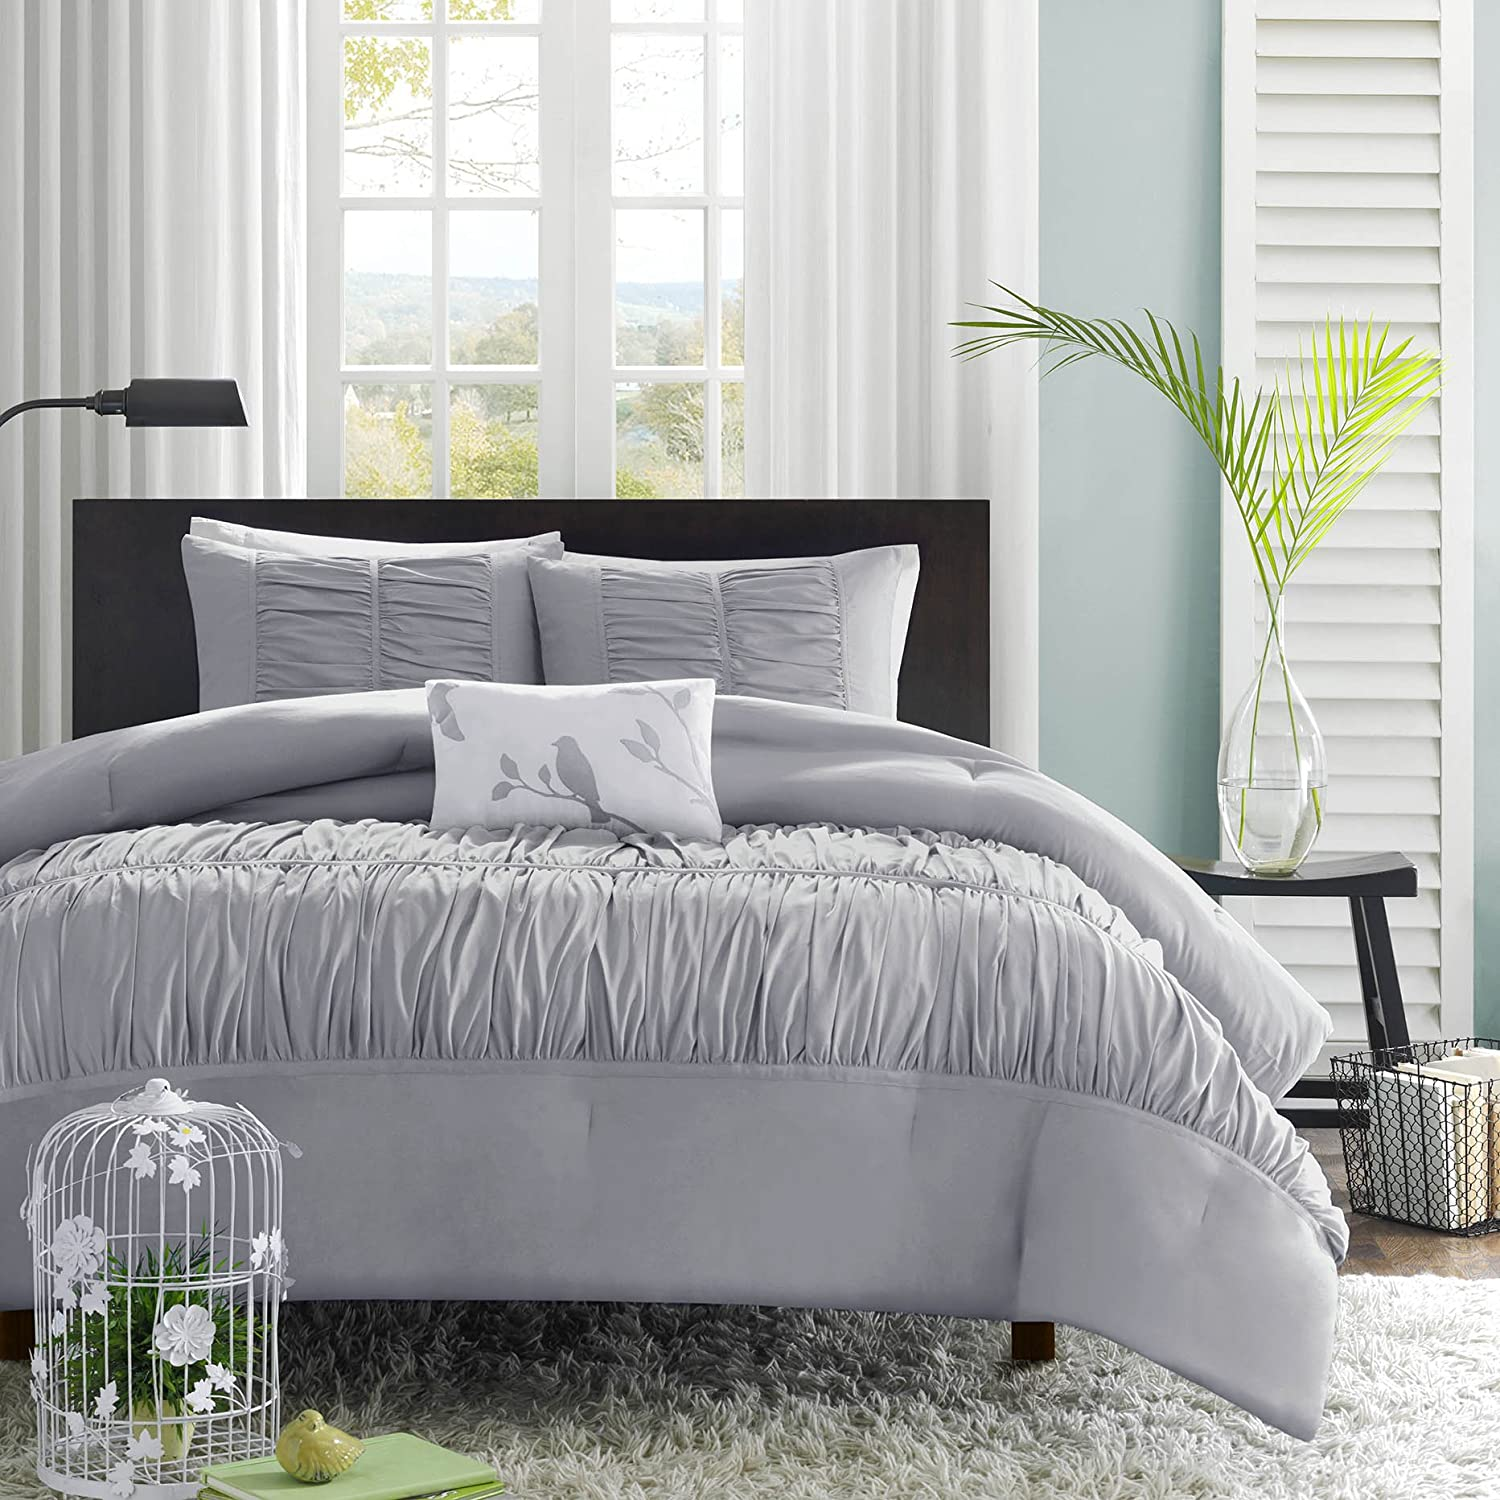 in comforter canada sheets piece miraculous sets king bedroom black breathtaking grey set and buy queen gray endearing beyond california yellow bed bedding bath from